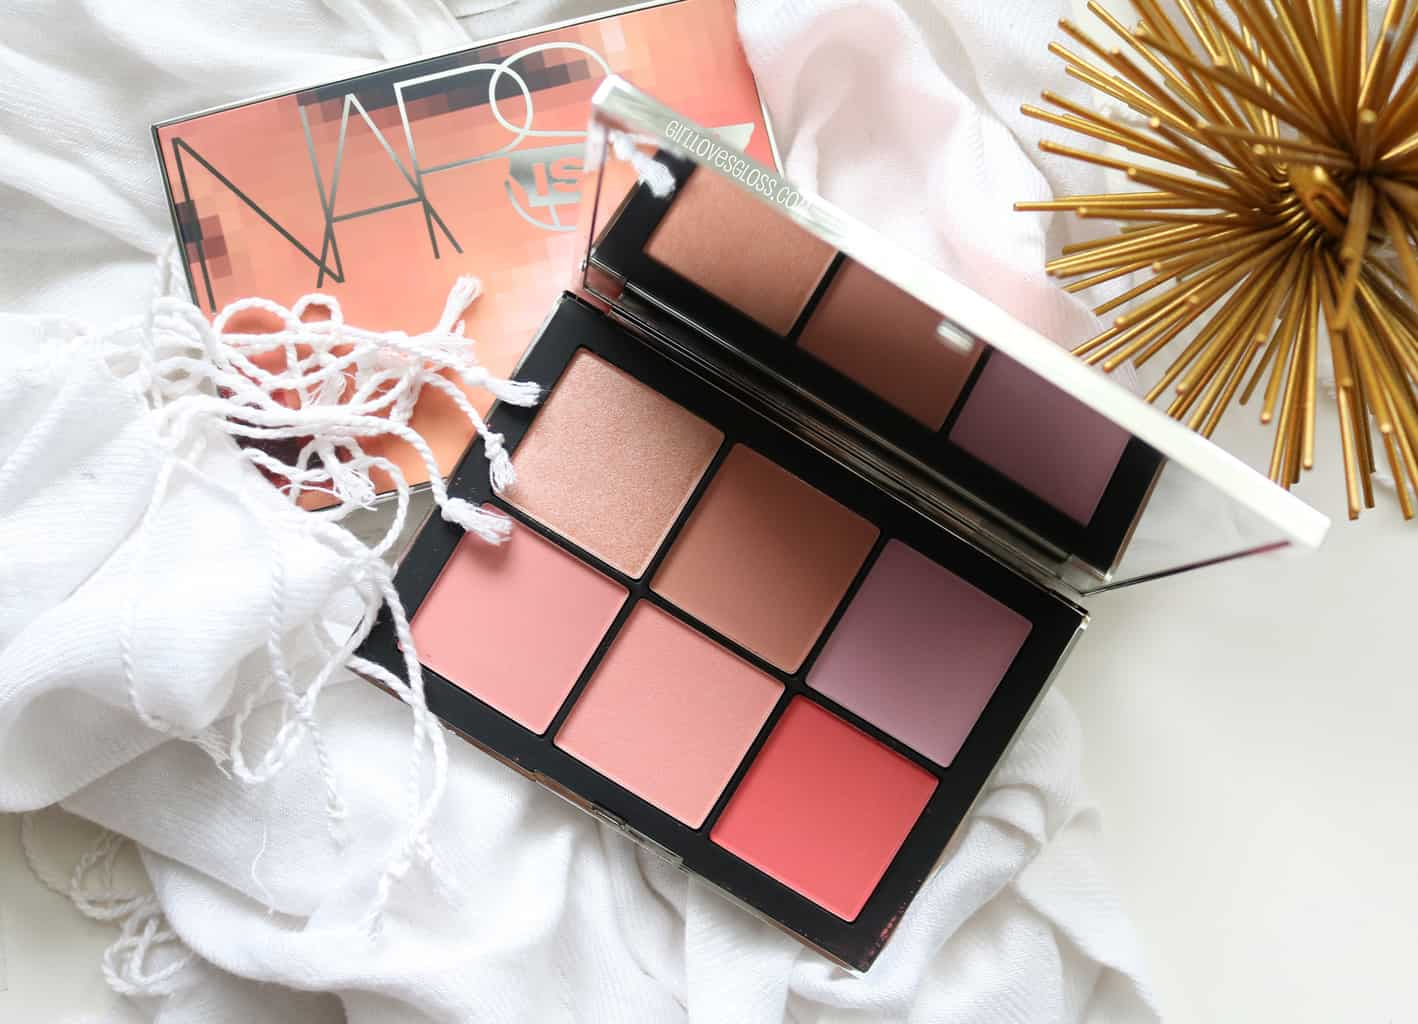 NARS Wanted Blush Palettes 1 and 2